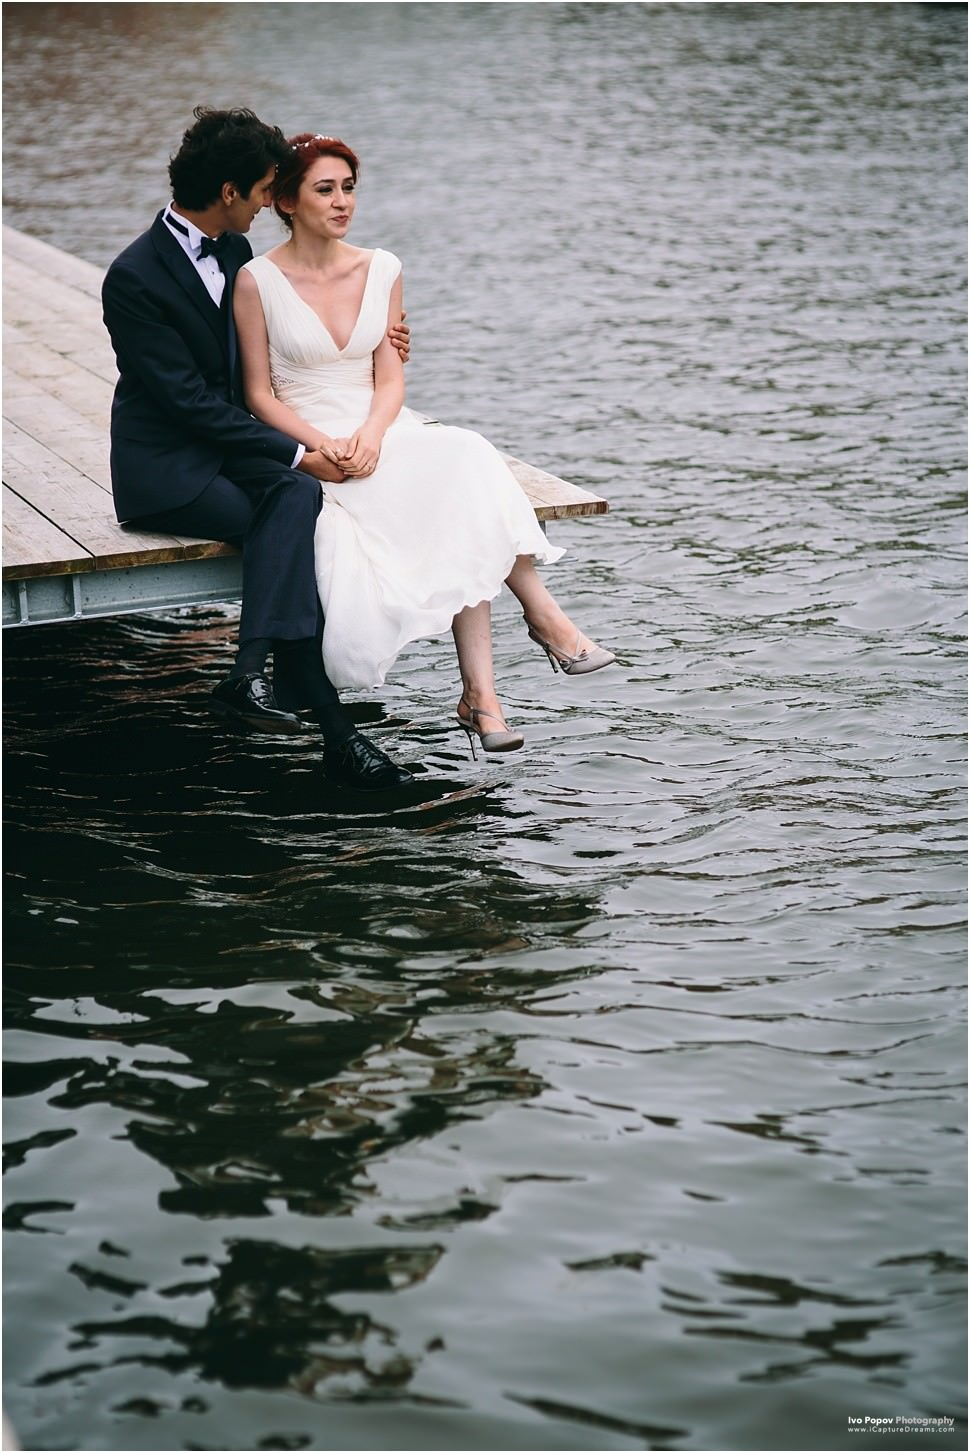 Creative wedding images in Bruges